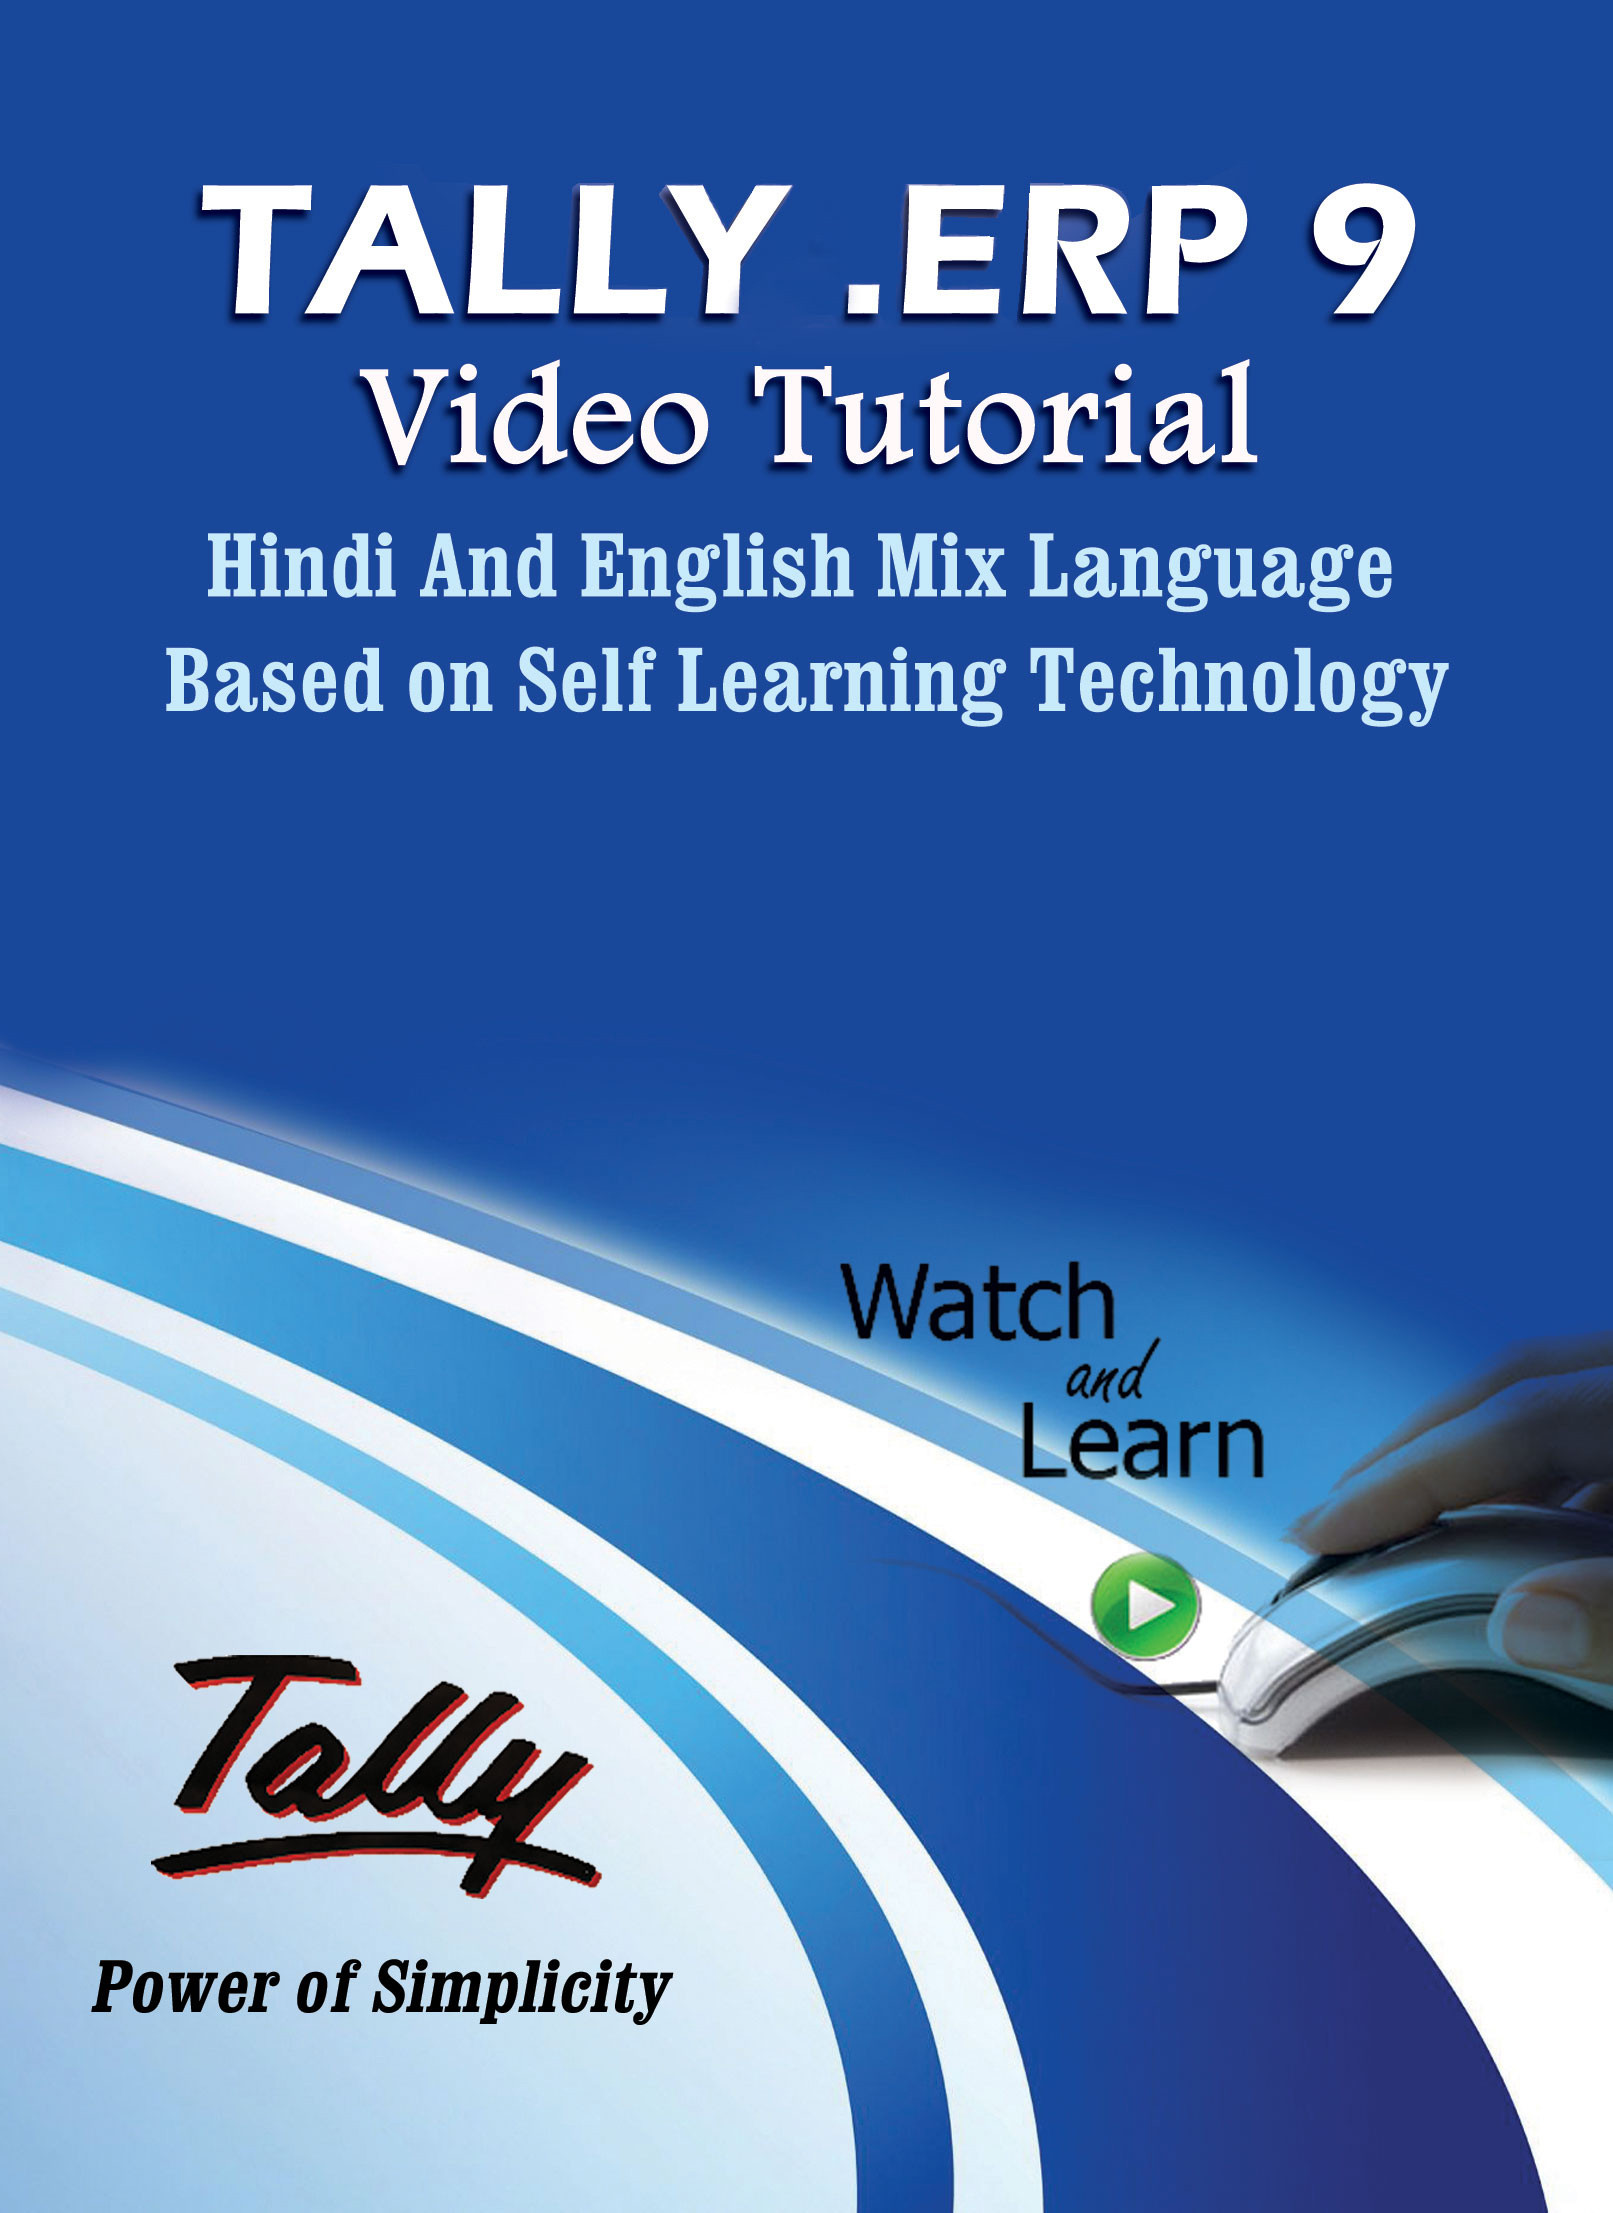 Lsoit Tally ERP 9.0 Tutorials DVD in Hindi and English Mix Language(DVD)